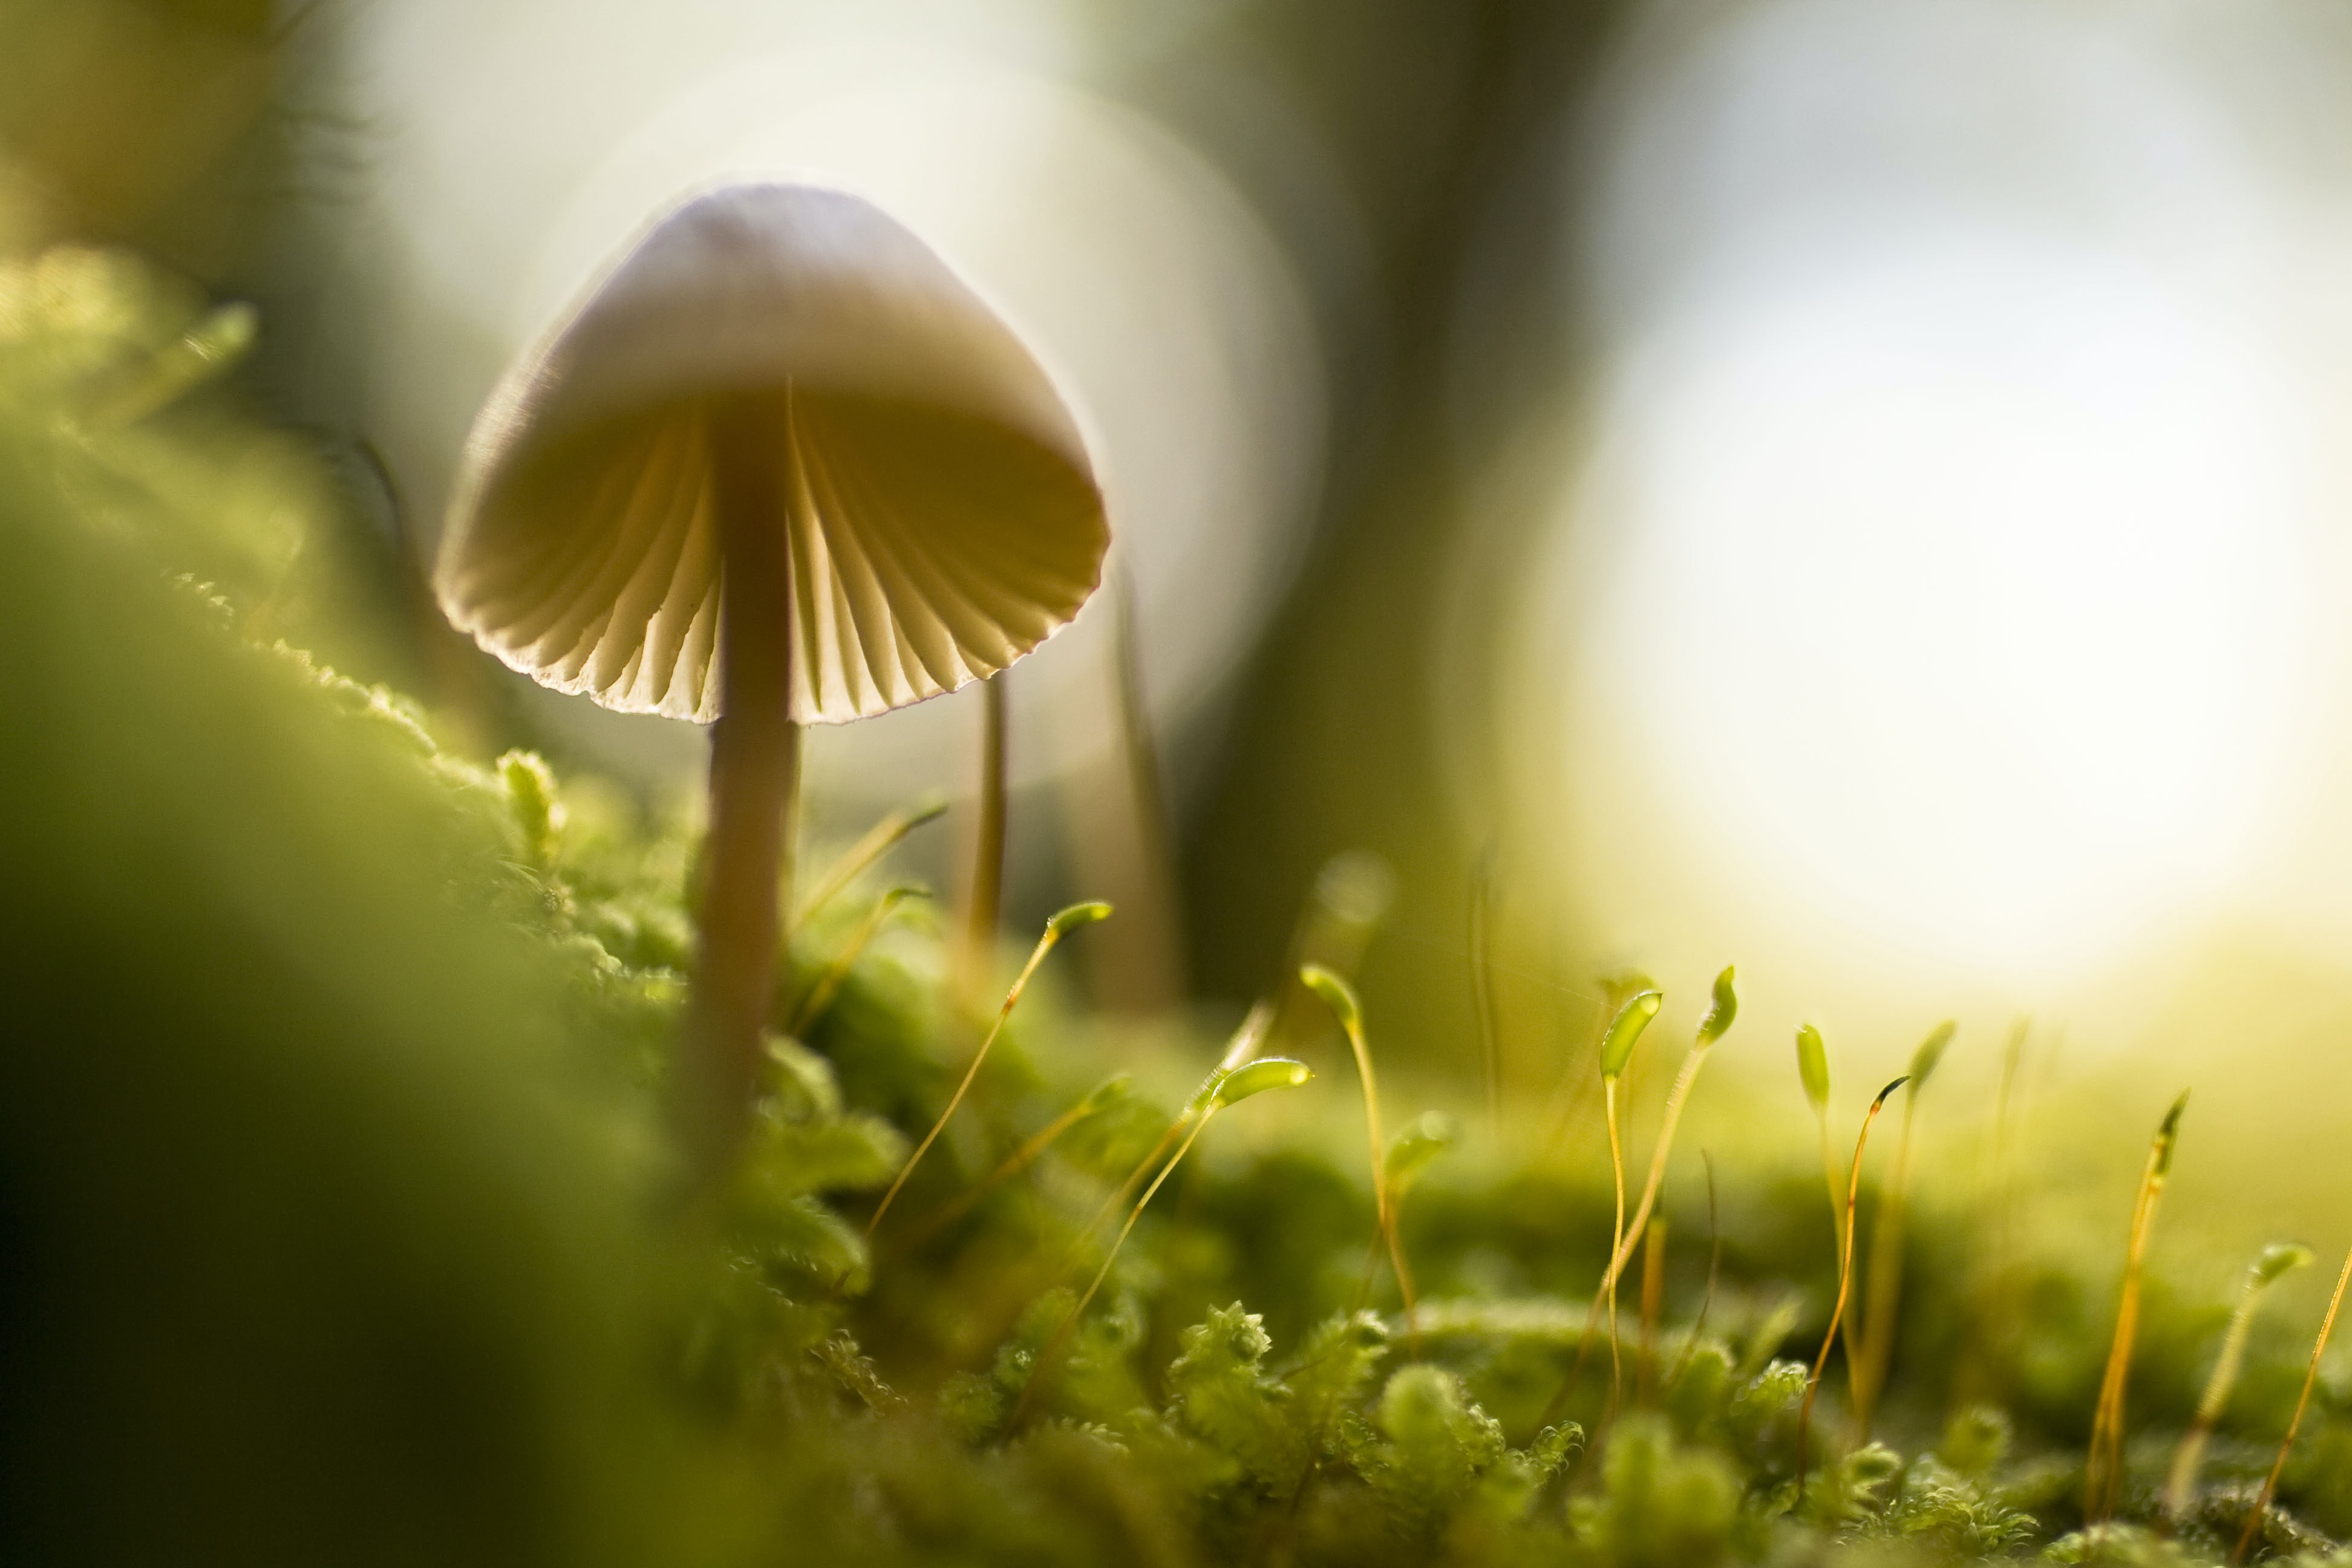 selective focus photograph of mushroom